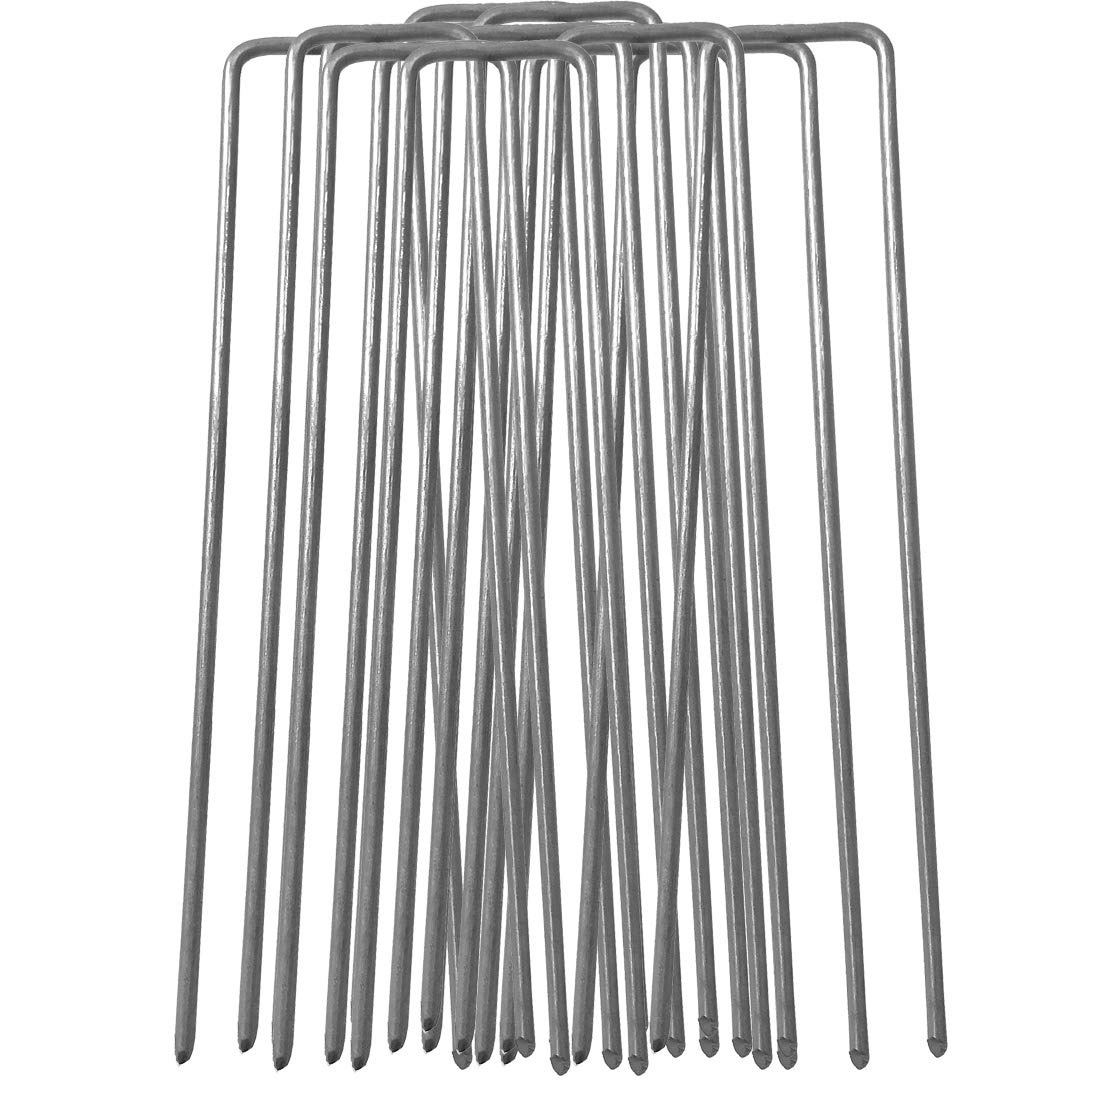 100 x 6''/150mm U-shaped multi-purpose galvanised steel Garden Securing Pegs for securing weed fabric, landscape fabric, netting, polythene membrane, ground sheets and fleece - Made of 2.98mm thick galvanised steel wire YM